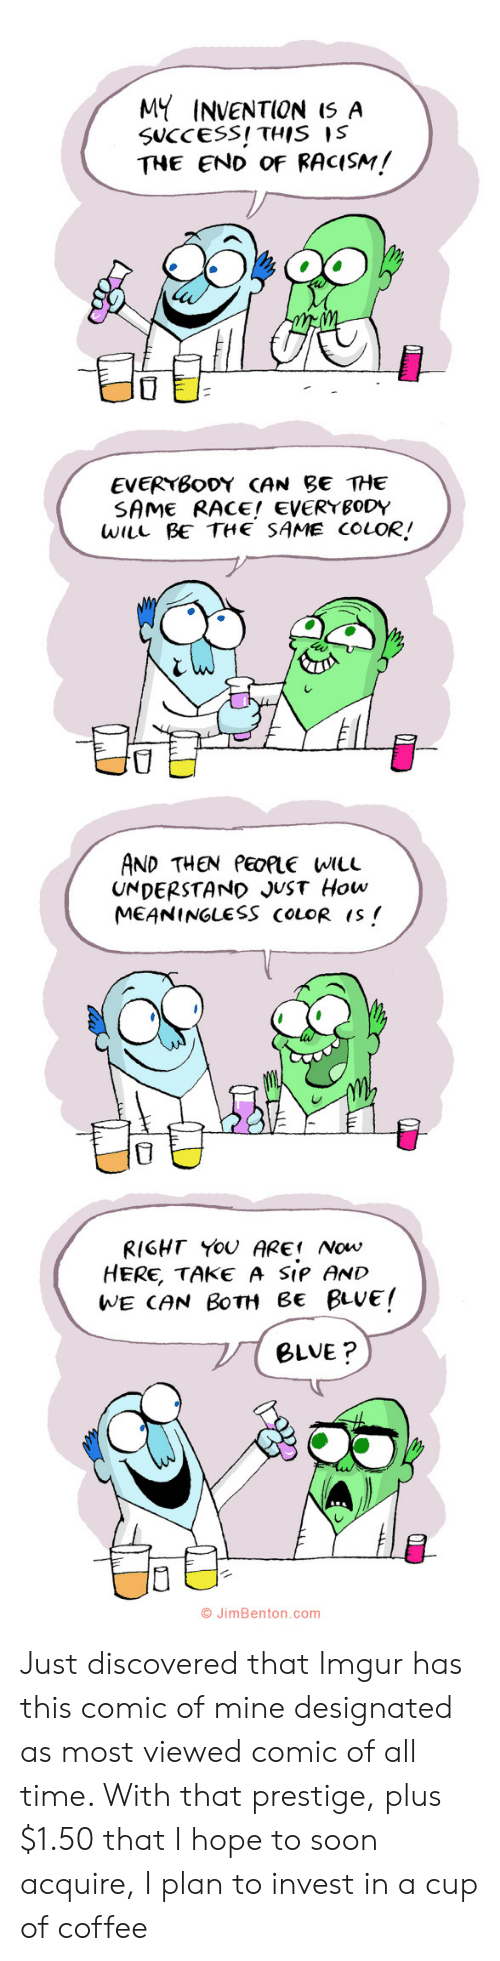 Race: MY INVENTION I5 A  SUCCESS! THIS IS  THE END OF RACISM!  EVERYBODY CAN BE THE  SAME RACE! EVERYBODY  WILL BE THE SAME COLOR!  AND THEN PEOPLE WILL  UNDERSTAND JUST How  MEANINGLESS COLOR IS  RIGHT YOU ARE Now  HERE, TAKE A SIP AND  WE CAN BOTH Be BLUE!  BLVE?  O JimBenton.com  י Just discovered that Imgur has this comic of mine designated as most viewed comic of all time. With that prestige, plus $1.50 that I hope to soon acquire, I plan to invest in a cup of coffee